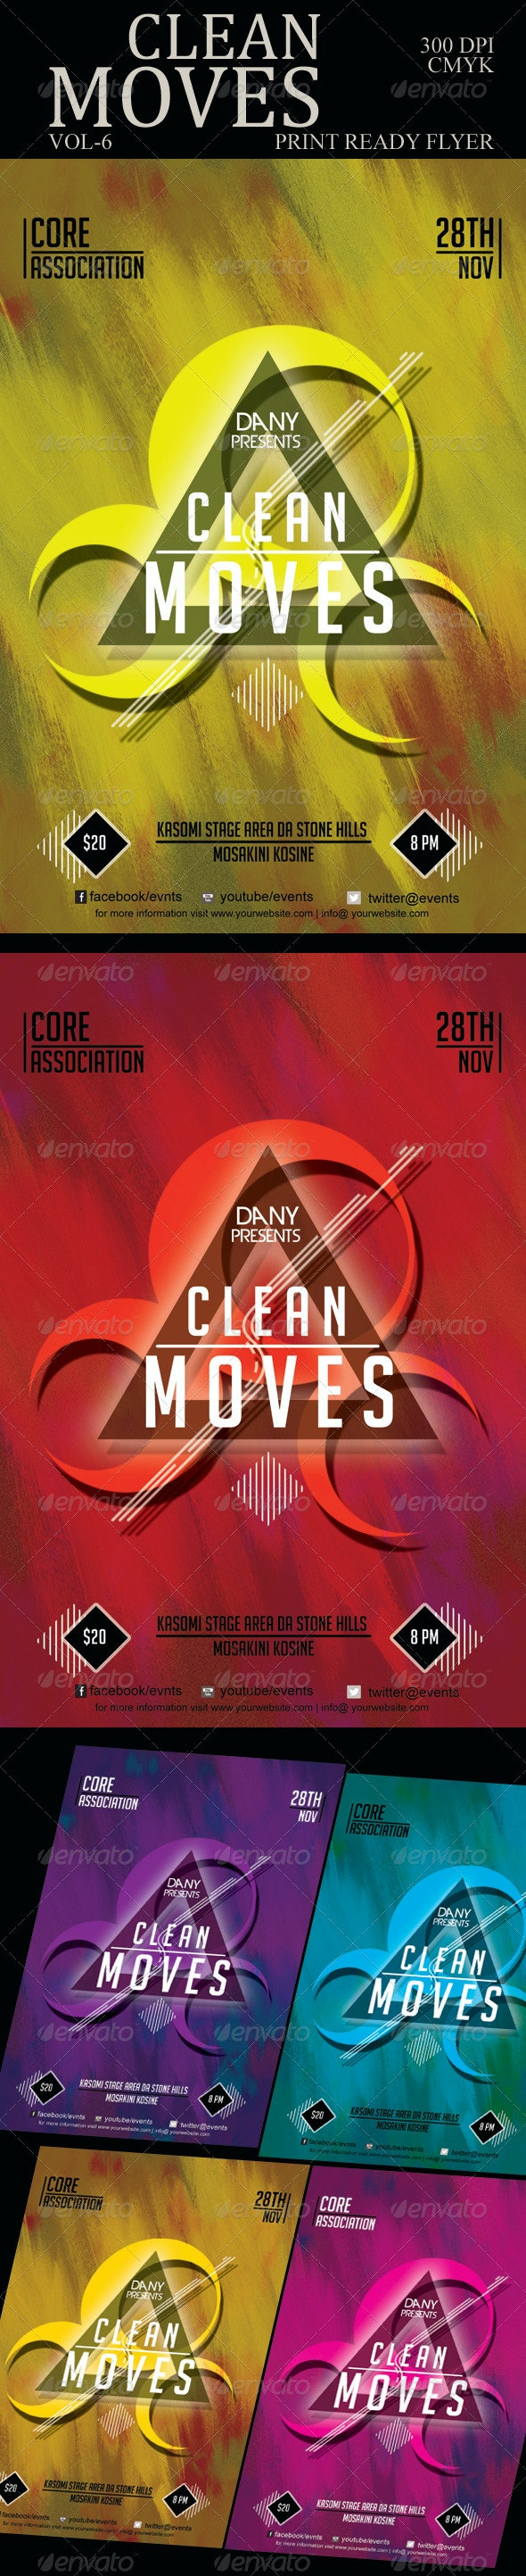 Clean Moves Flyer 6 - Clubs & Parties Events